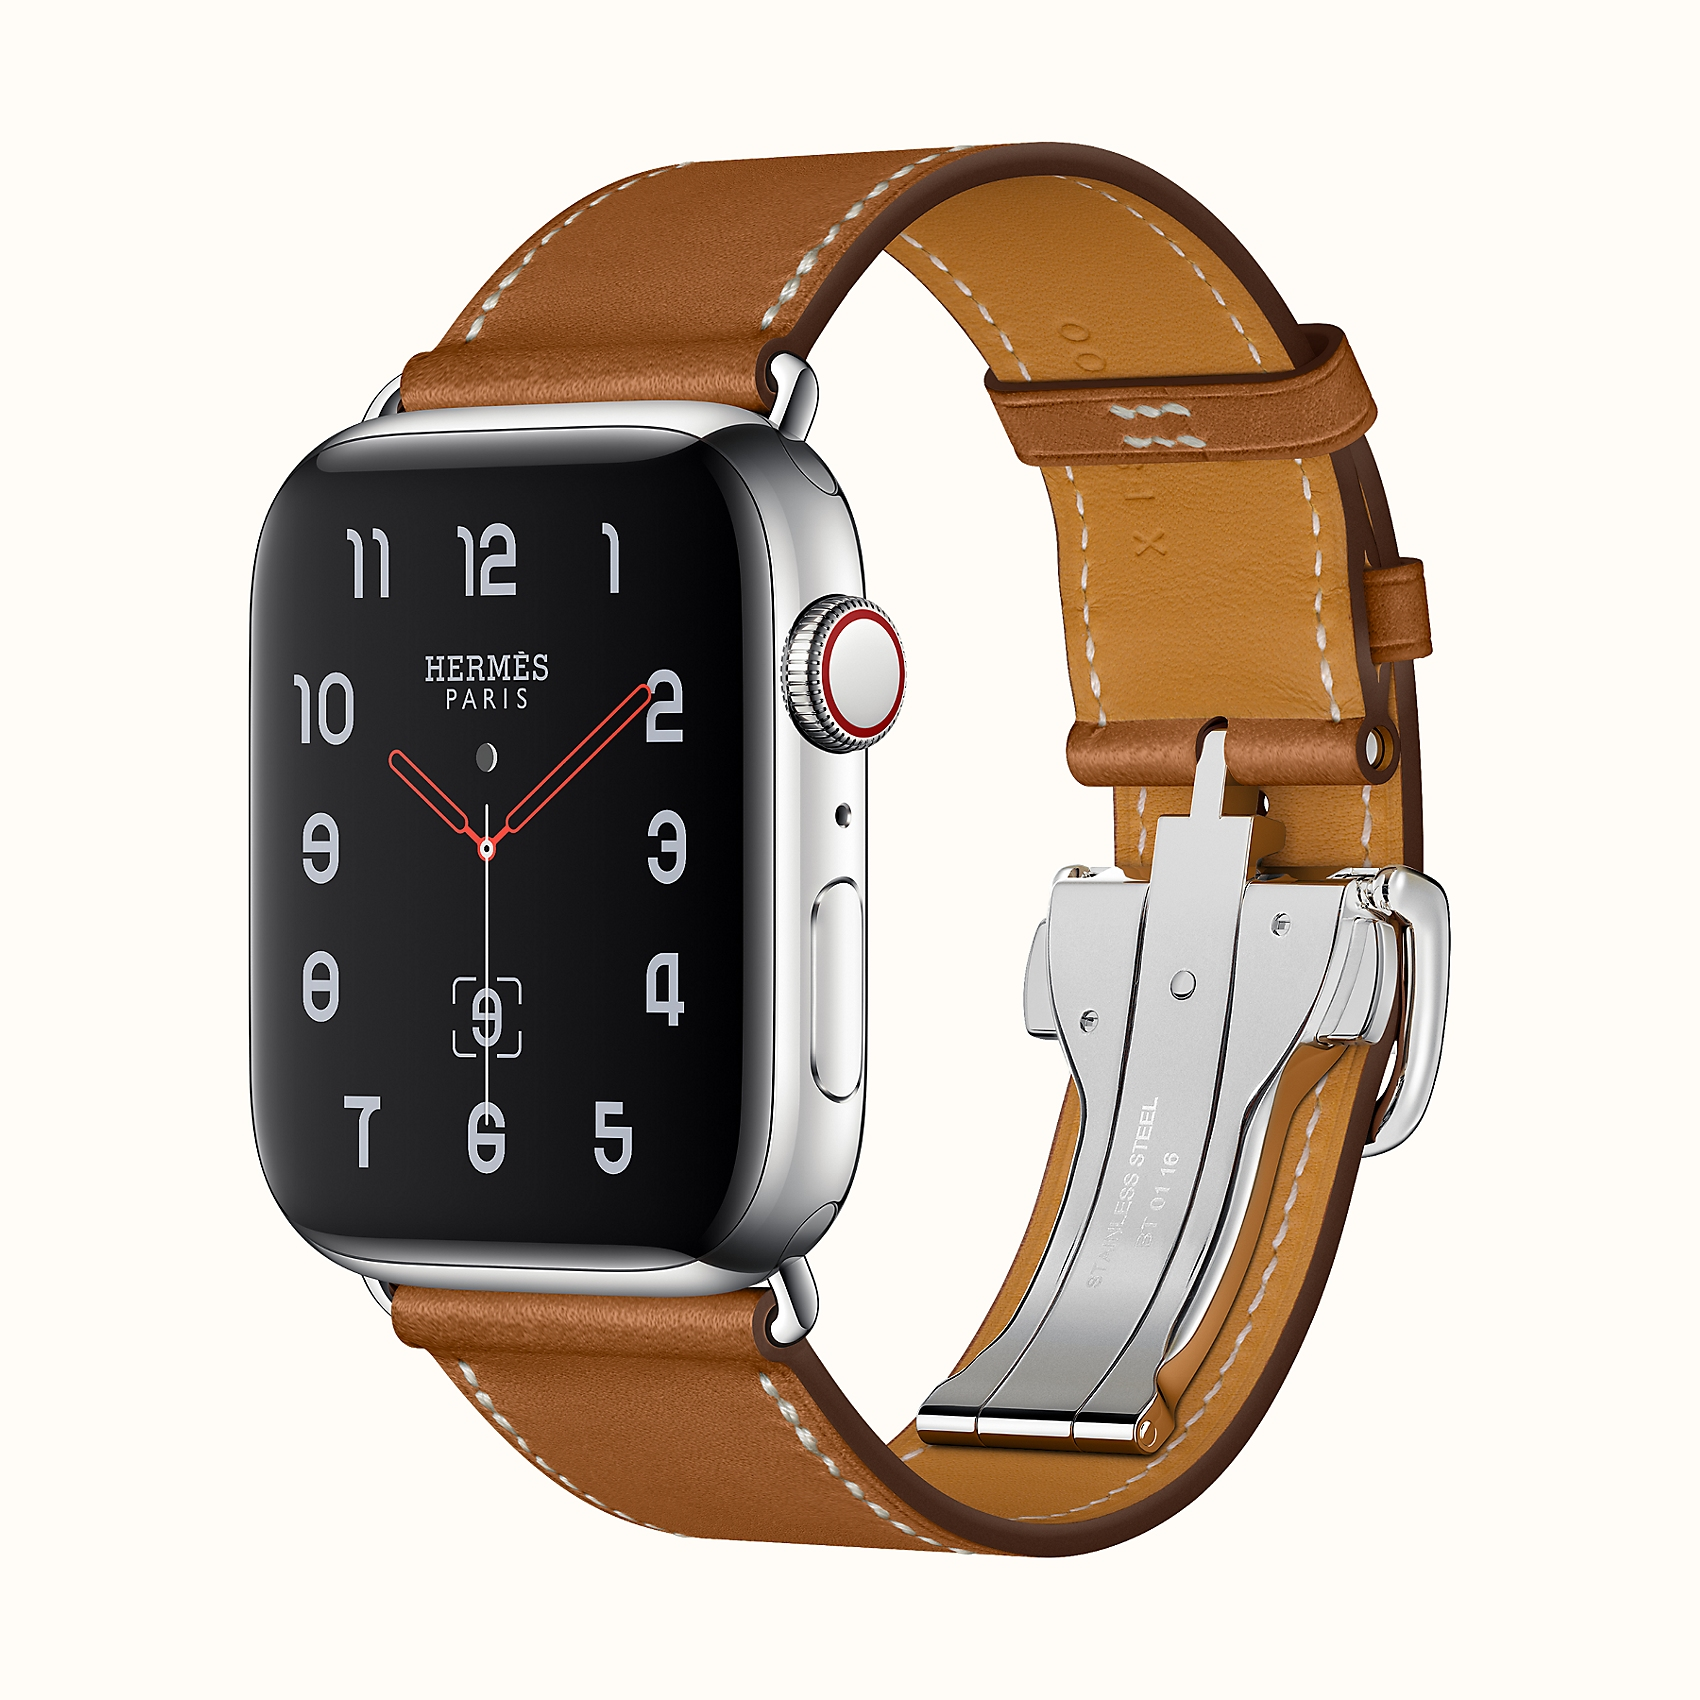 Hermes watch strap